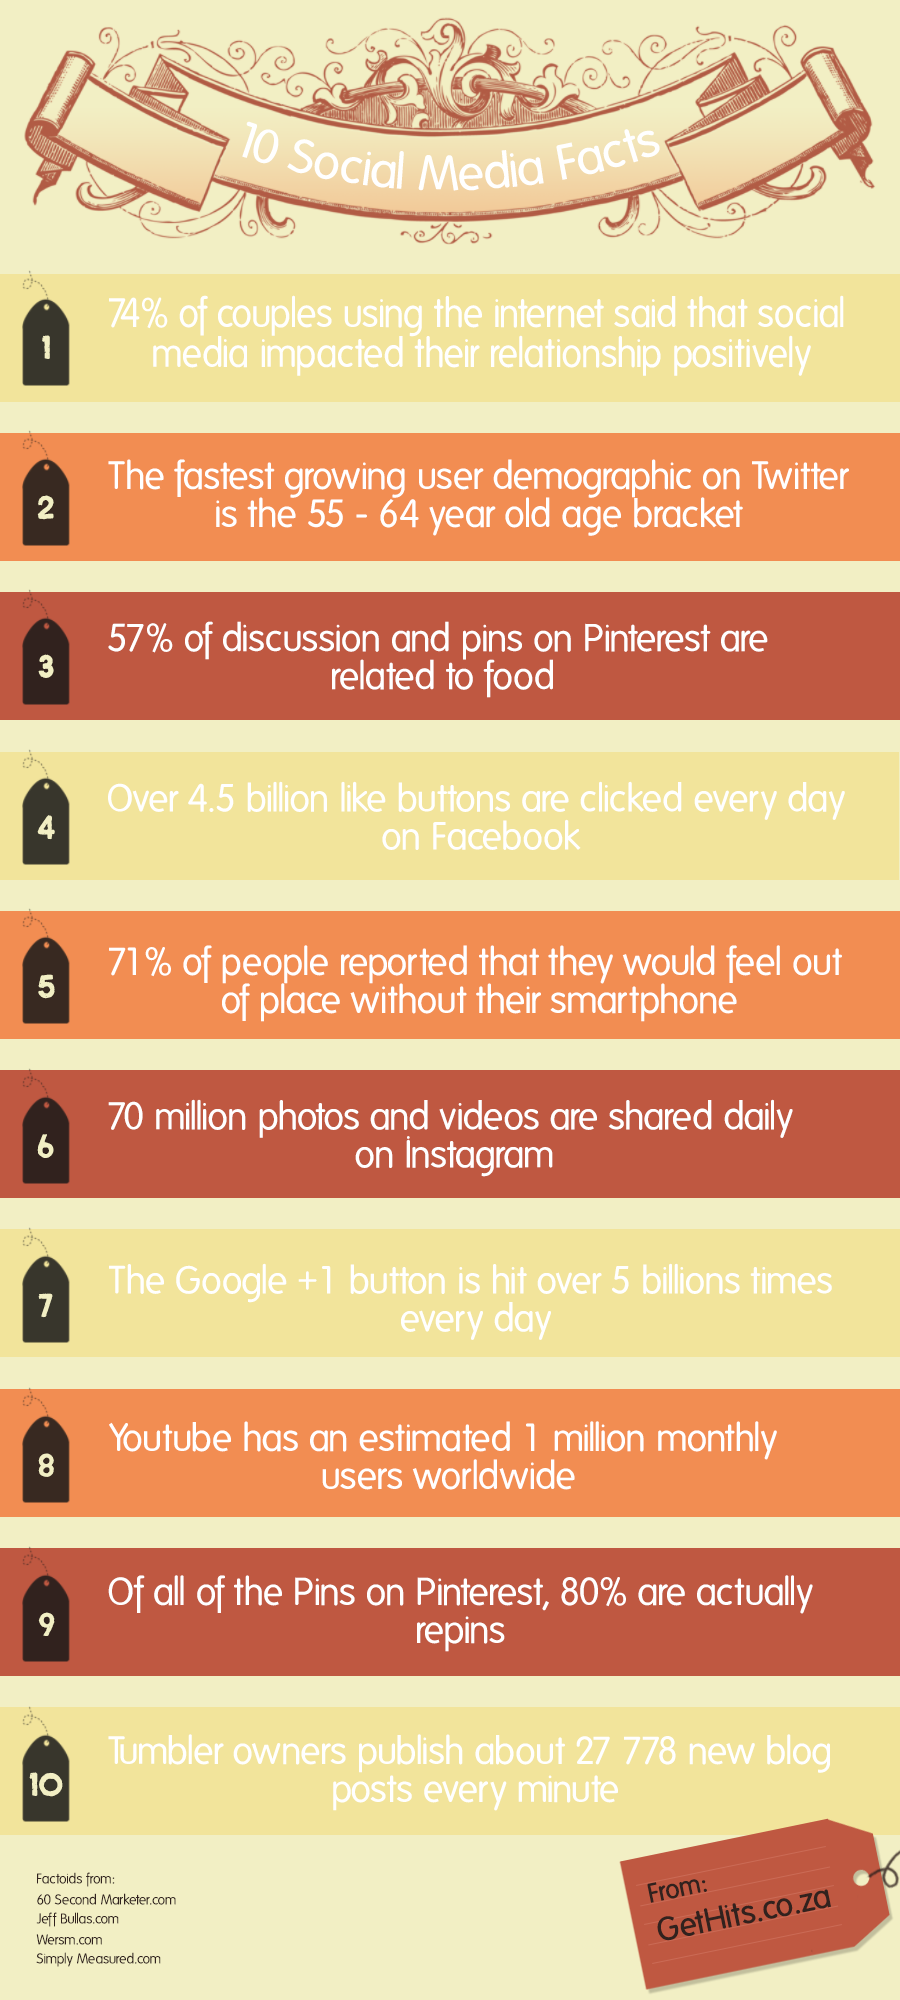 10 Social Media Facts about your favourite platforms